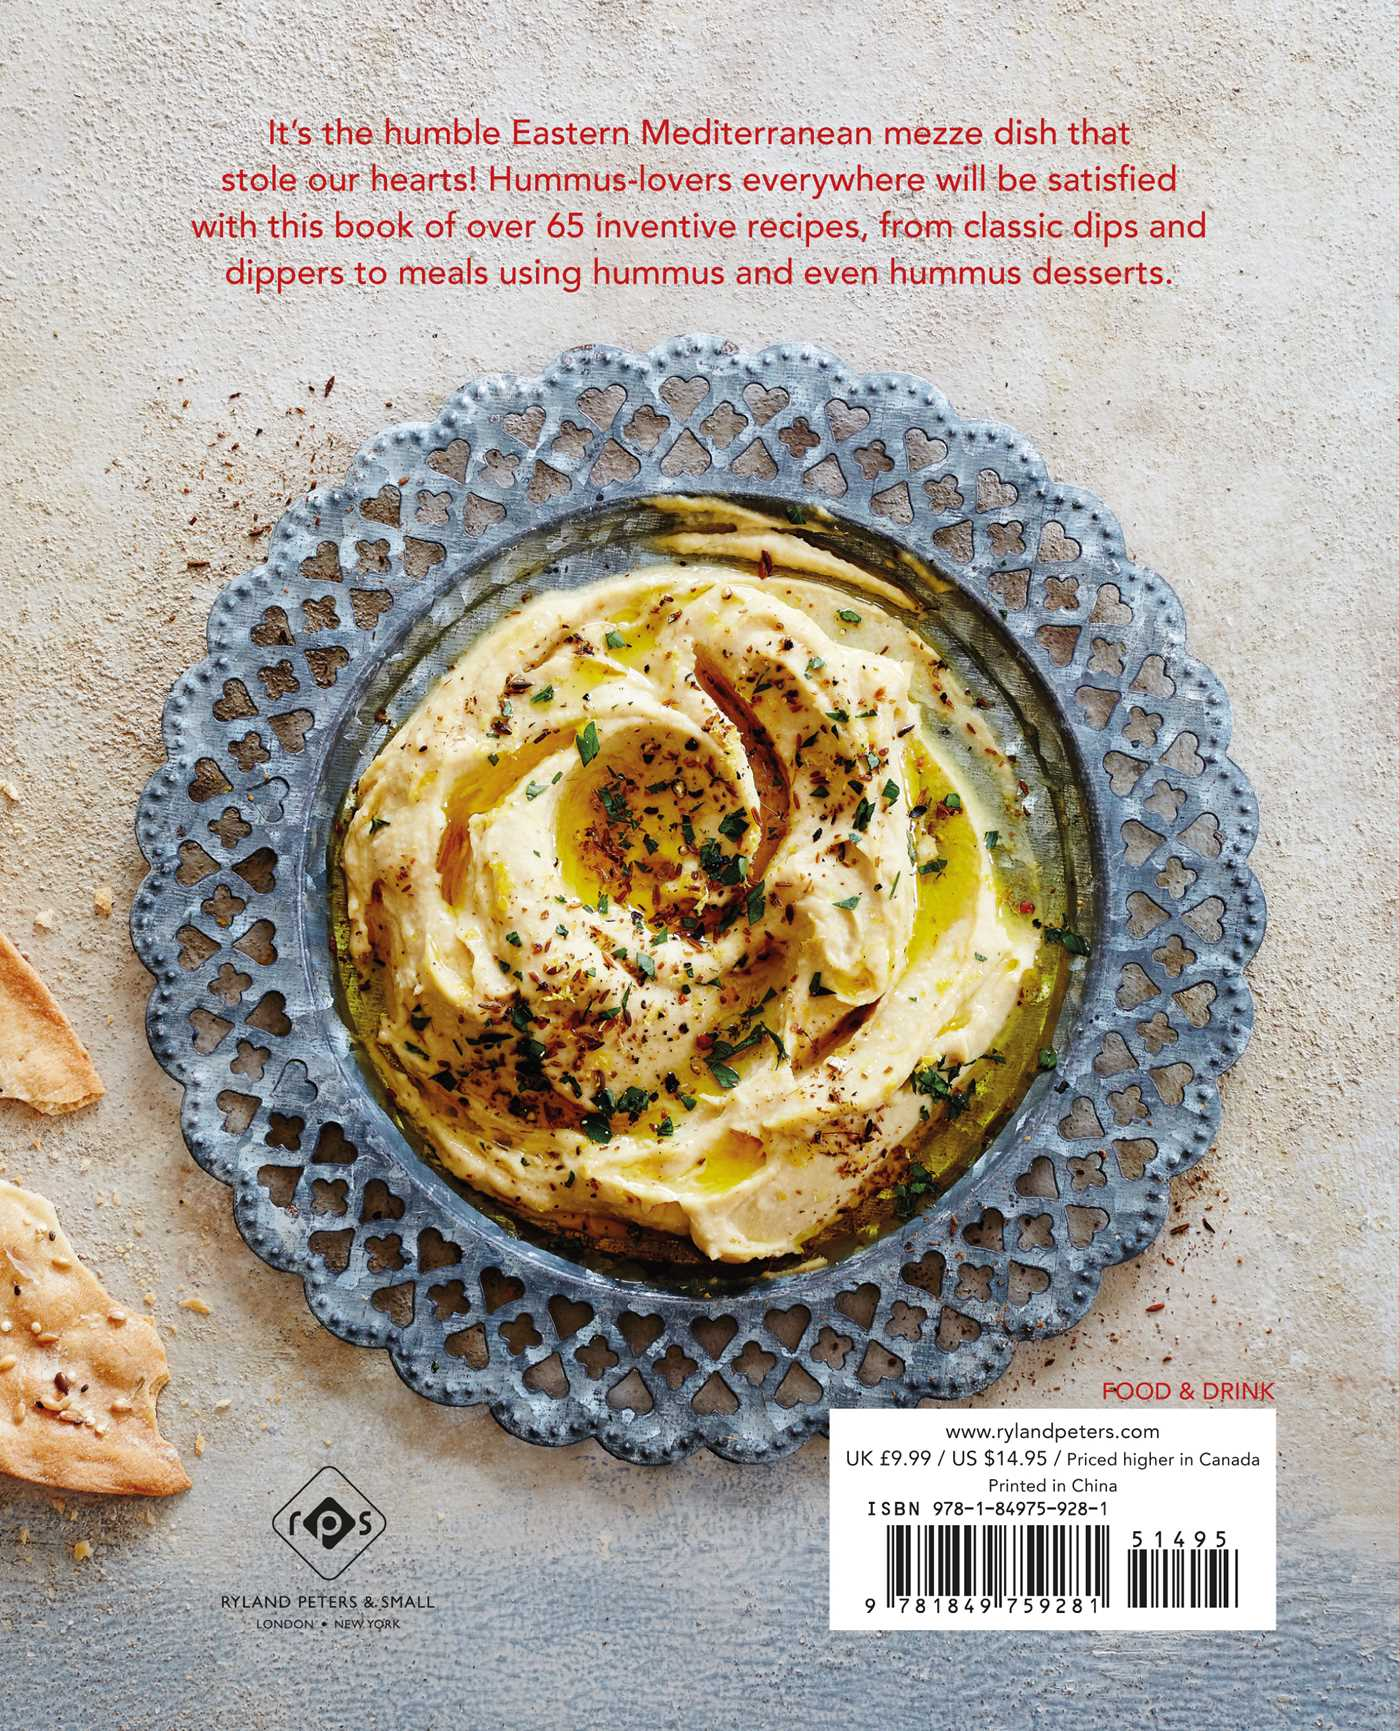 Hummus where the heart is 9781849759281 hr back